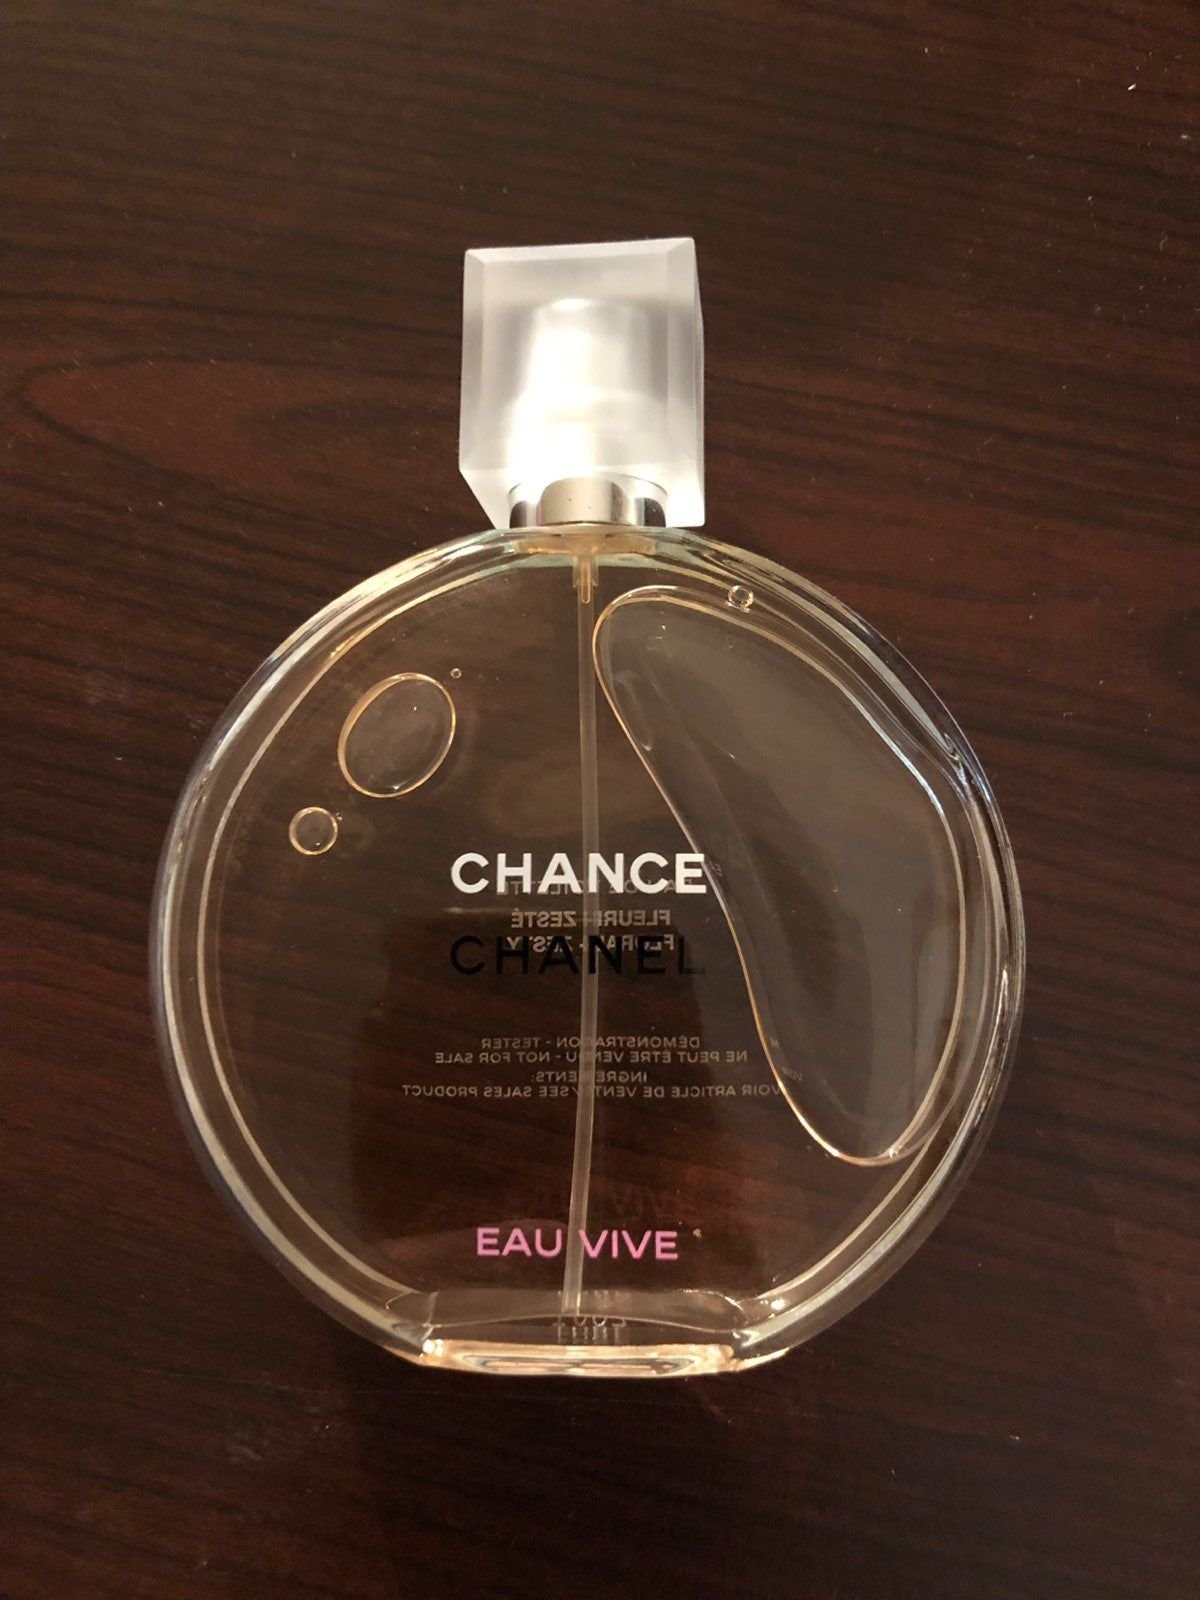 Brand New Demonstration Tester Size With Tester Box Chanel Chance Eau Vive Size 100ml 3 4fl Oz 100 Authentic Perfume Bottles Chanel Men Perfume